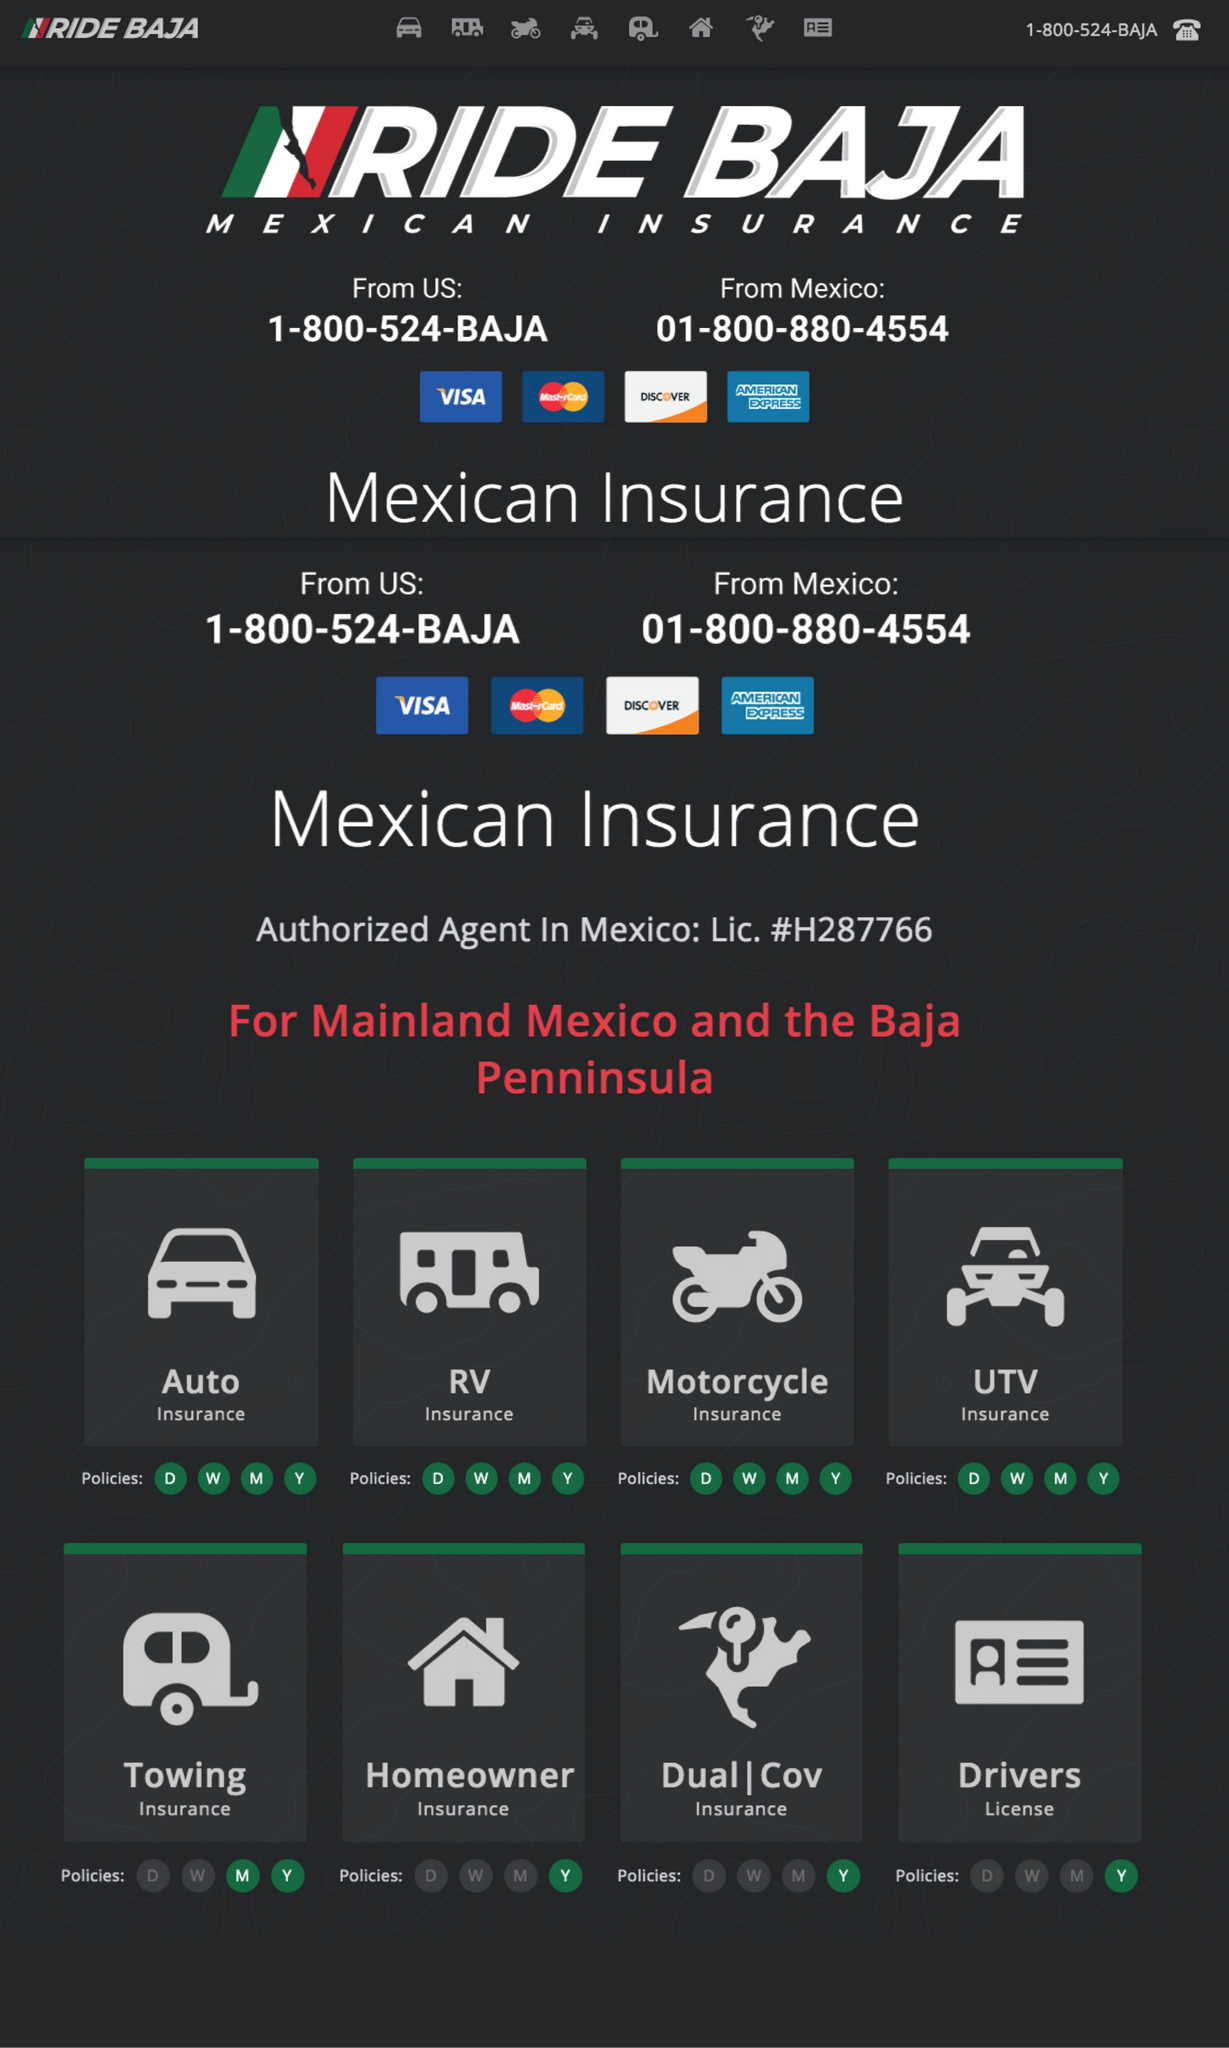 Ride Baja Mexican Insurance for Baja and Mainland Mexico